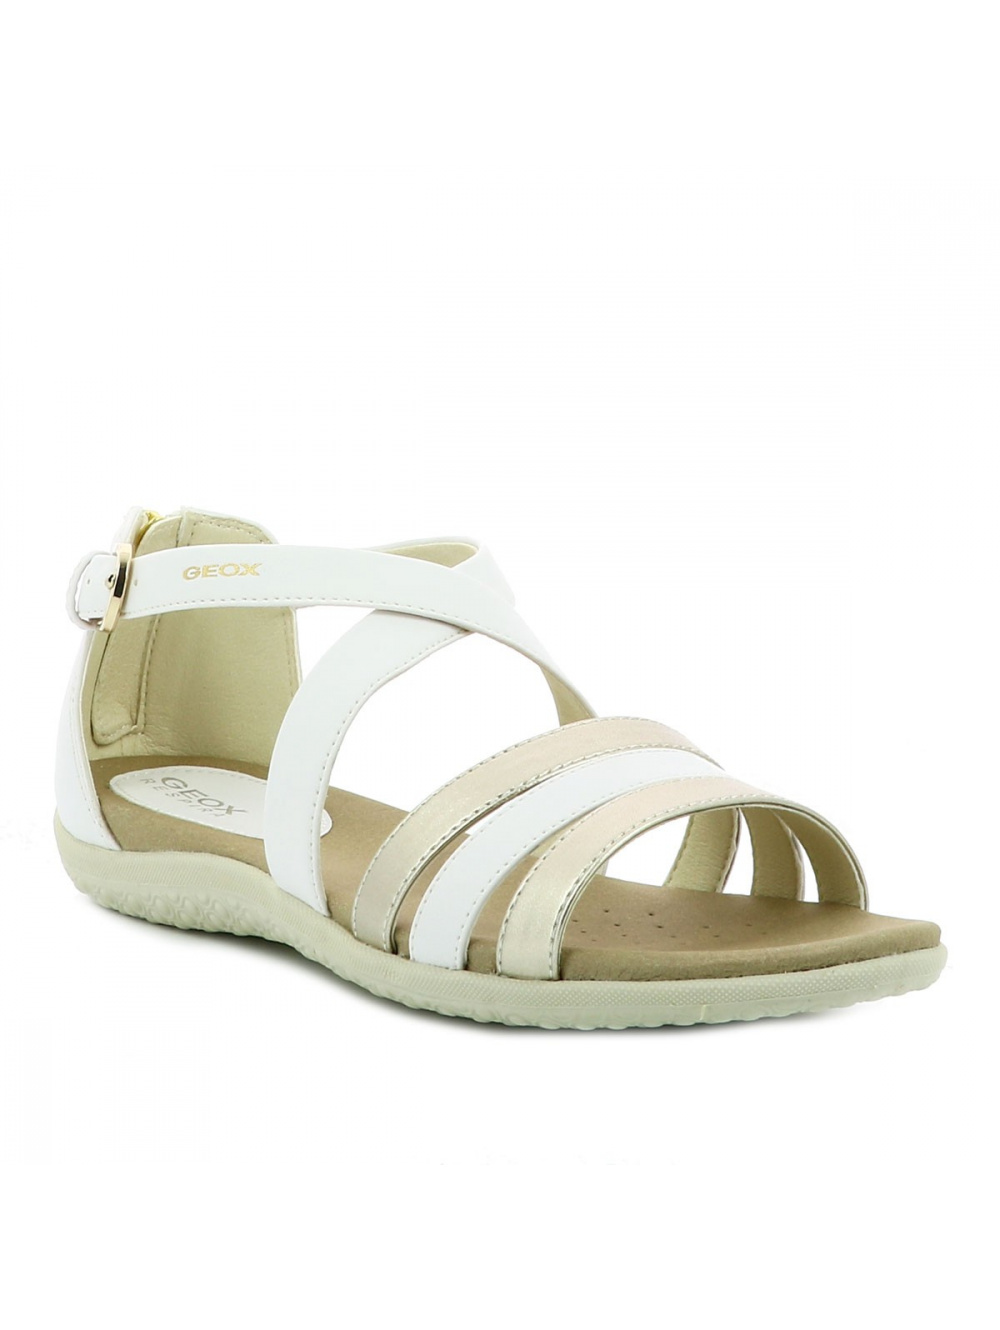 Chaussures nu-pieds femme blanc GEOX